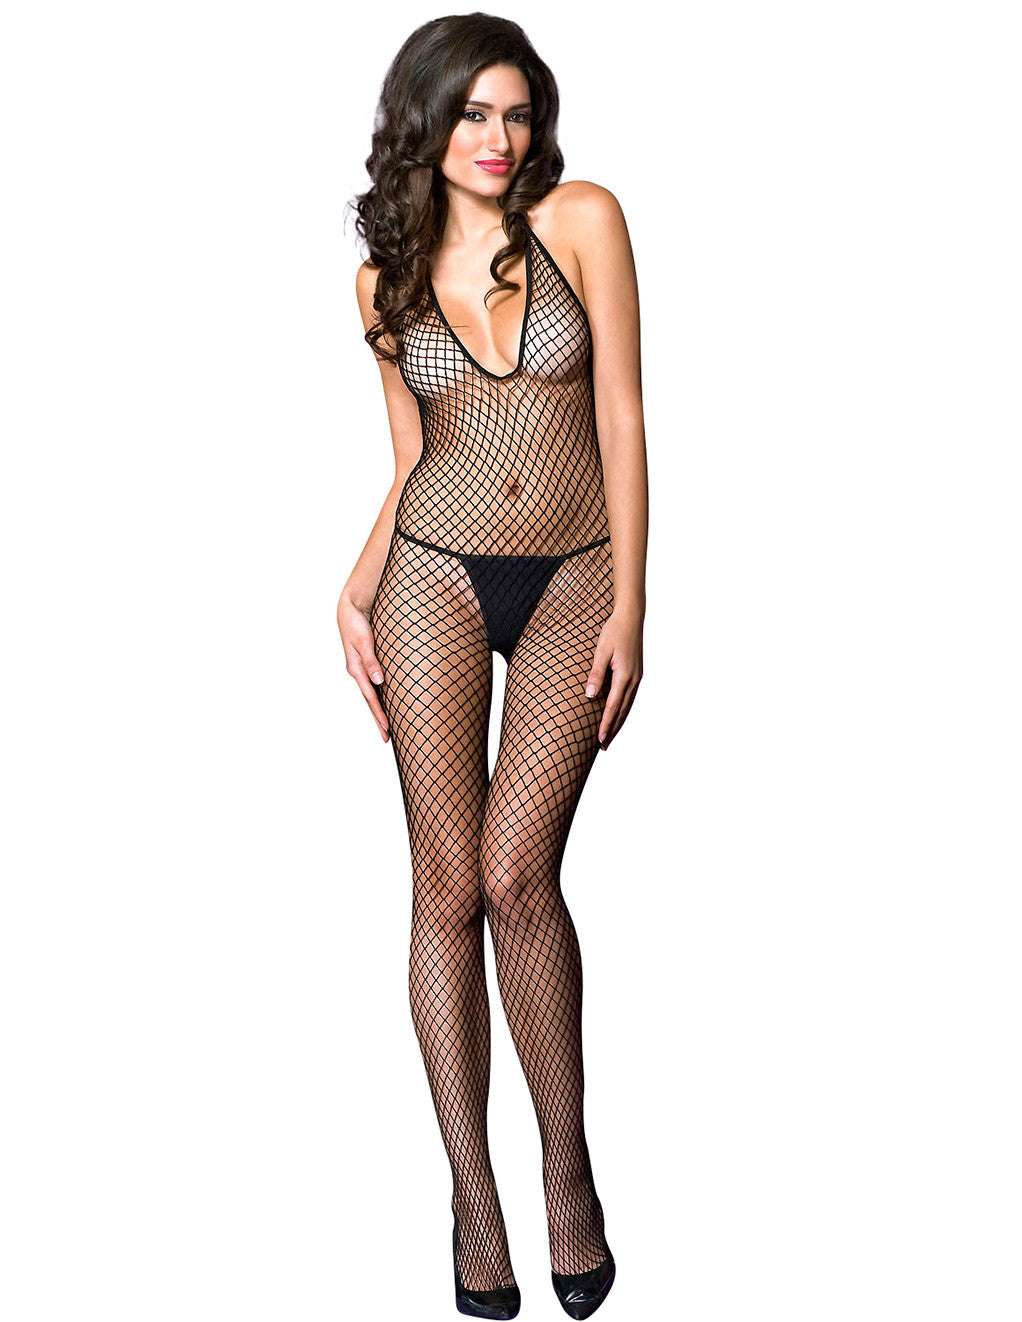 Hustler Lingerie Halter Mini Diamond Crotchless Bodystocking - Lingerie - Bodystockings